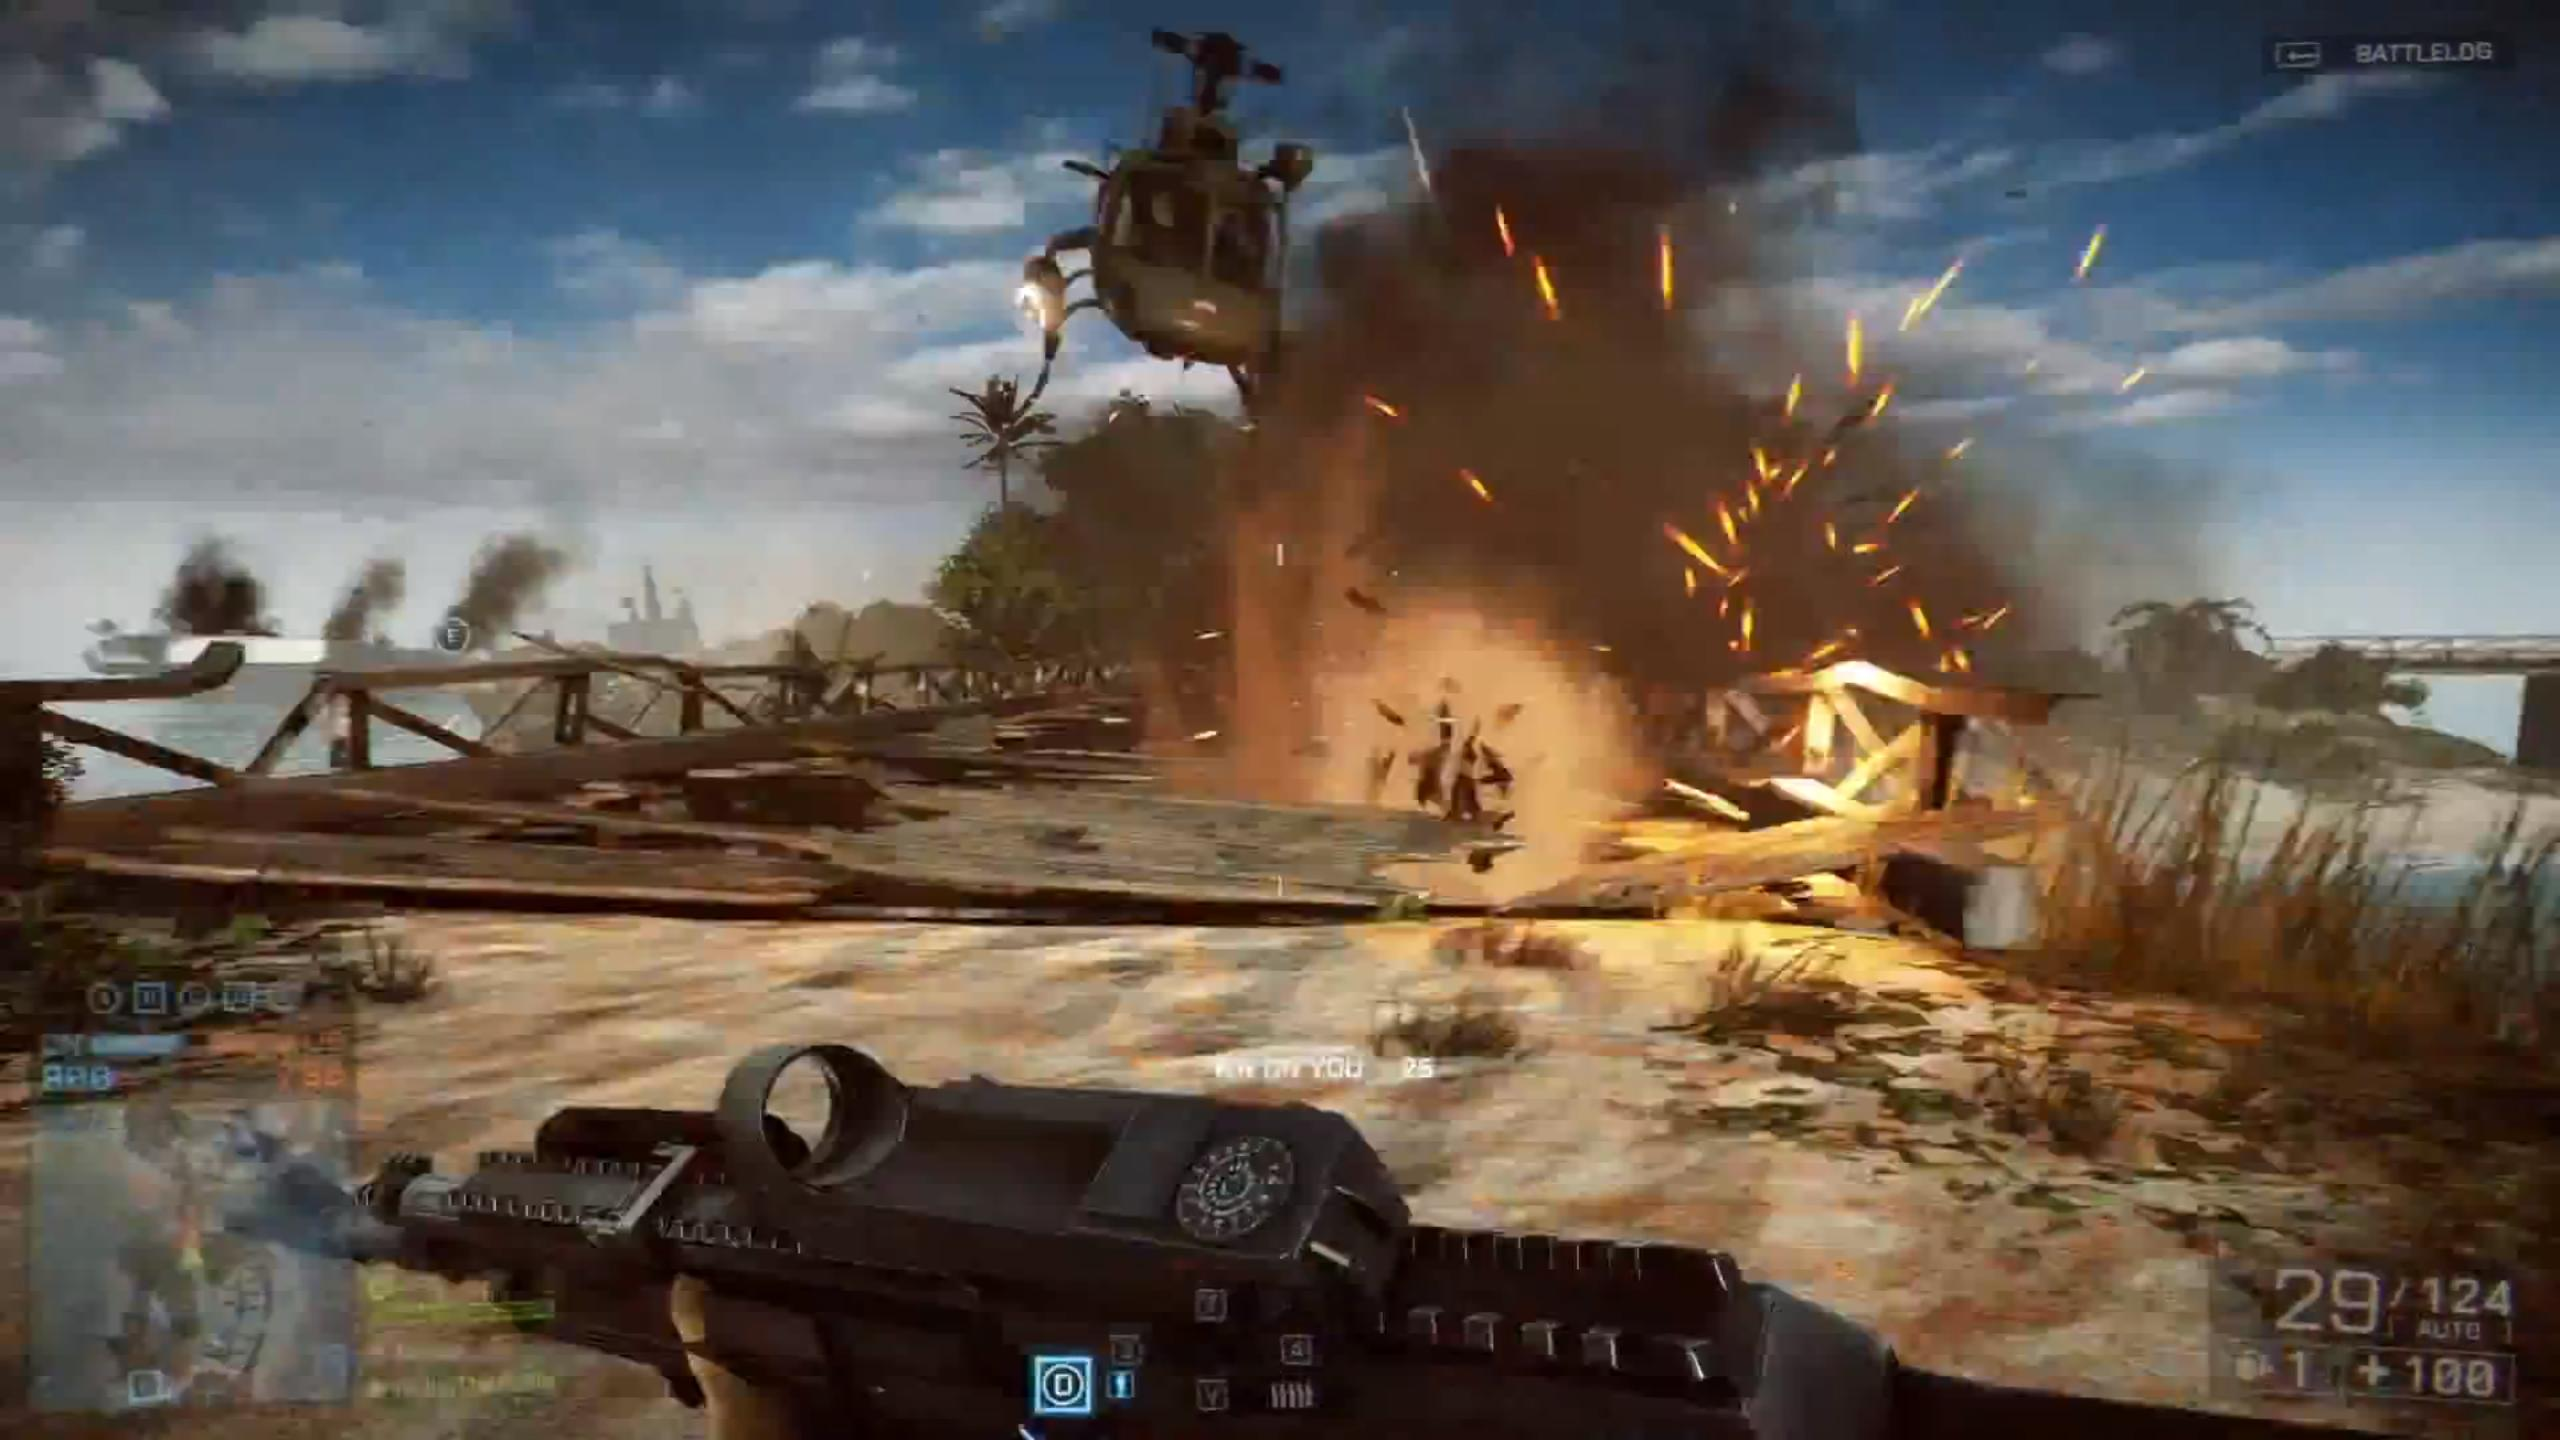 Battlefield 4 Multiplayer Trailer Shows New Maps Intense Action And Loads Of Ways To Kill Your Foes